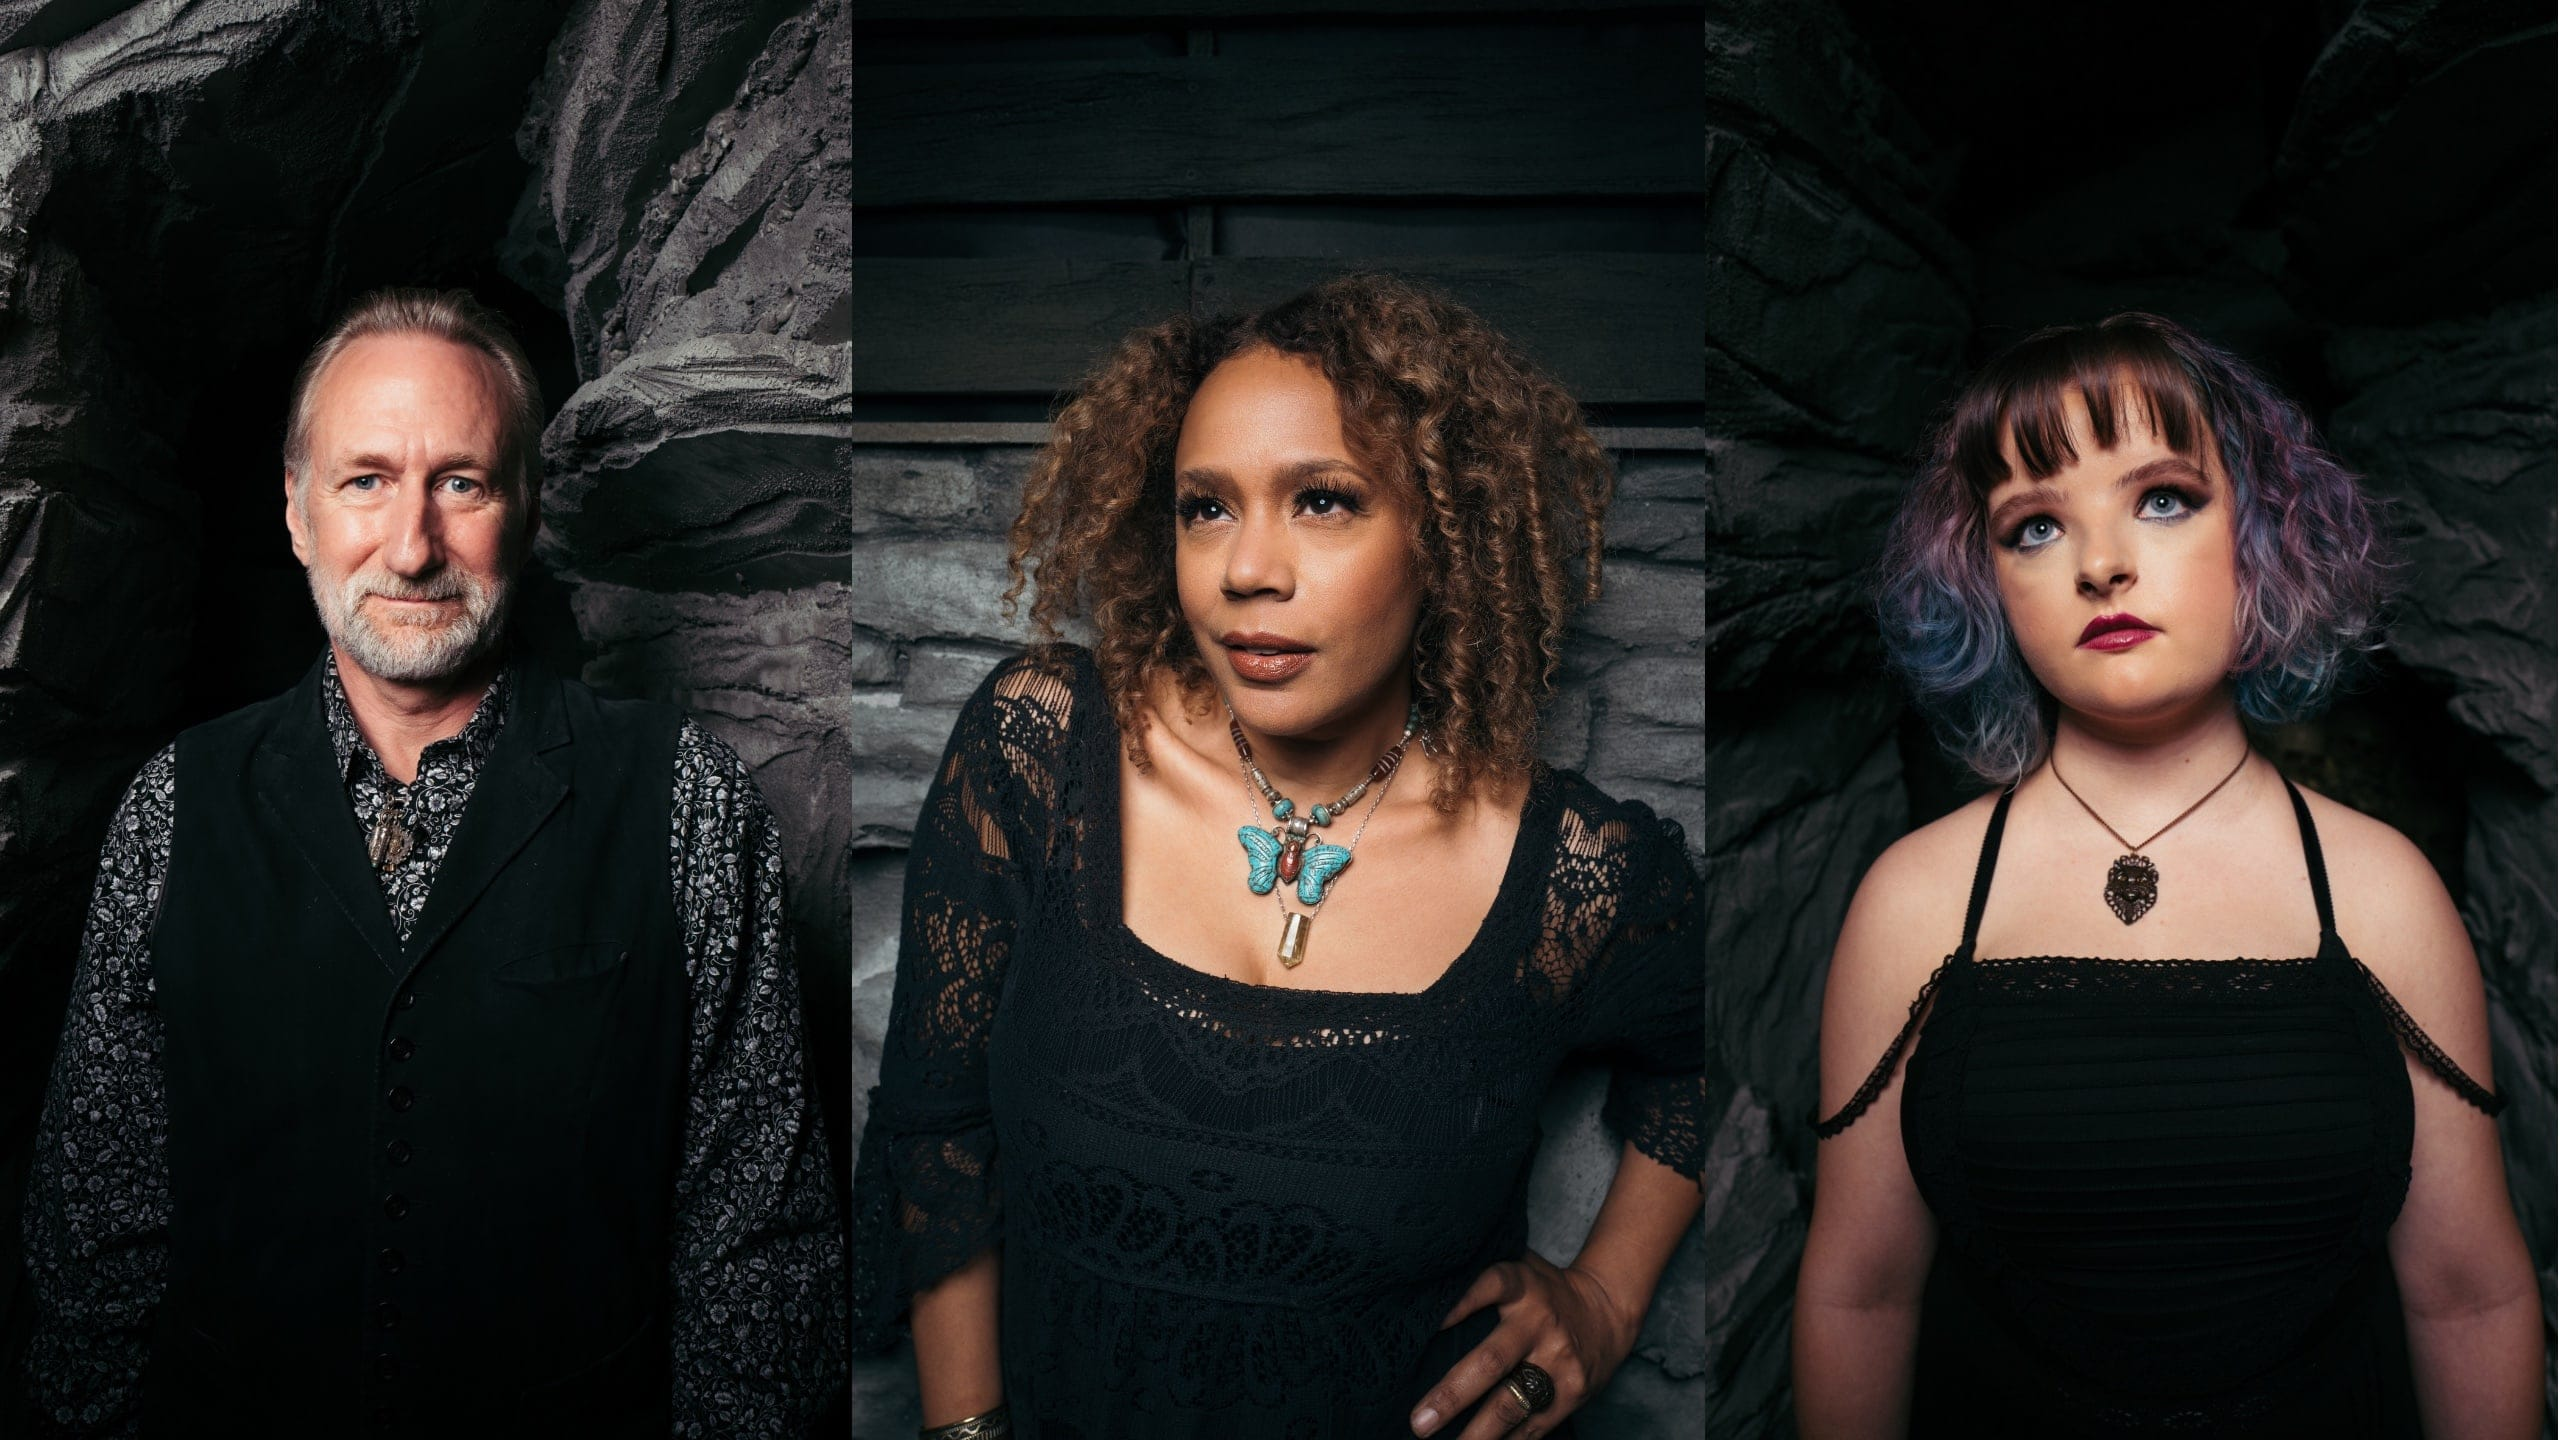 Brian Henson, Rachel True, and Milly Shapiro in Witches (2020)